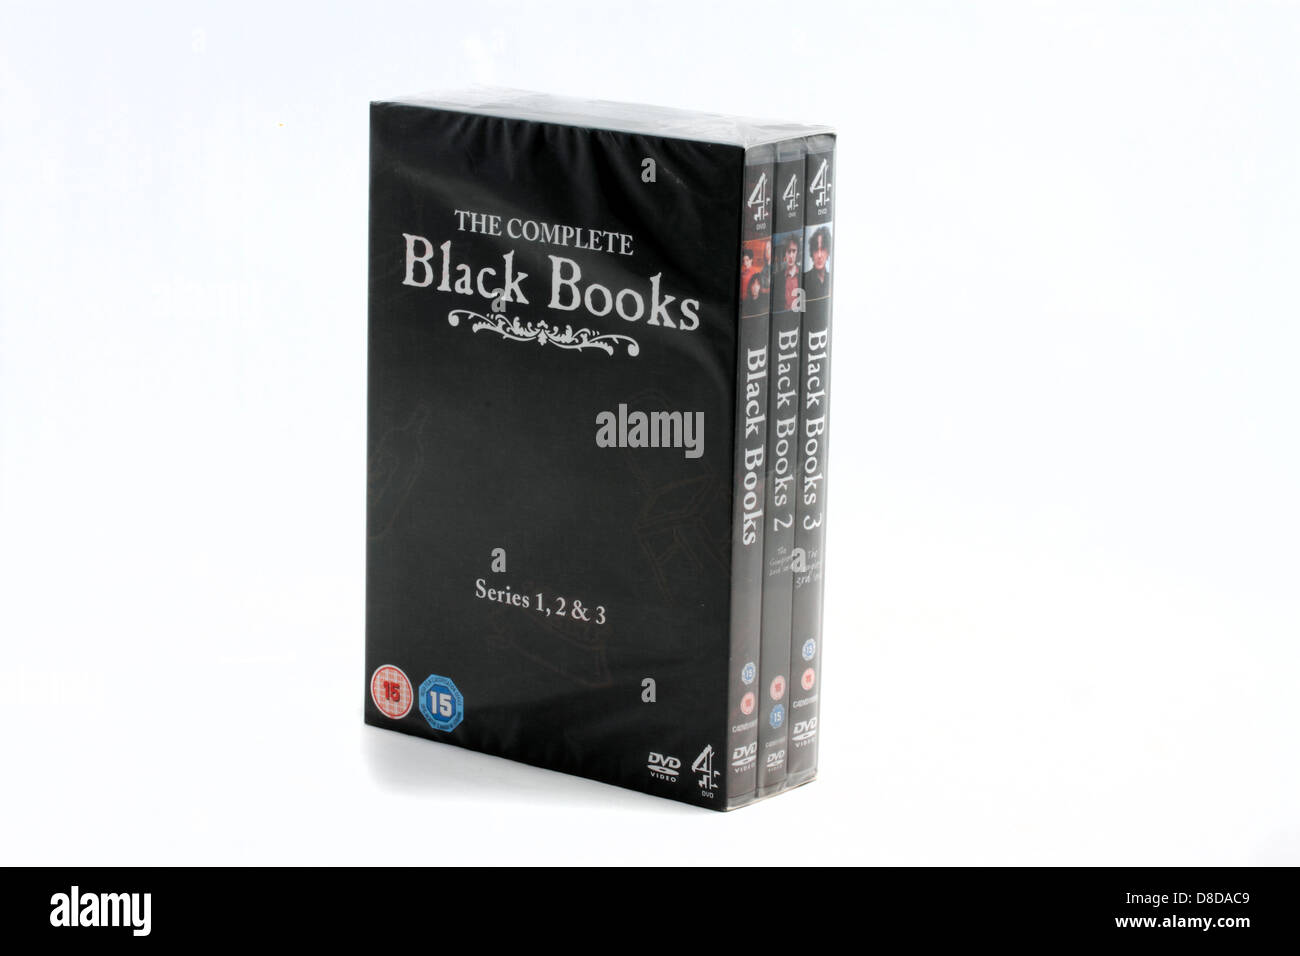 Black Books comedy series on DVD all three series unopened - Stock Image